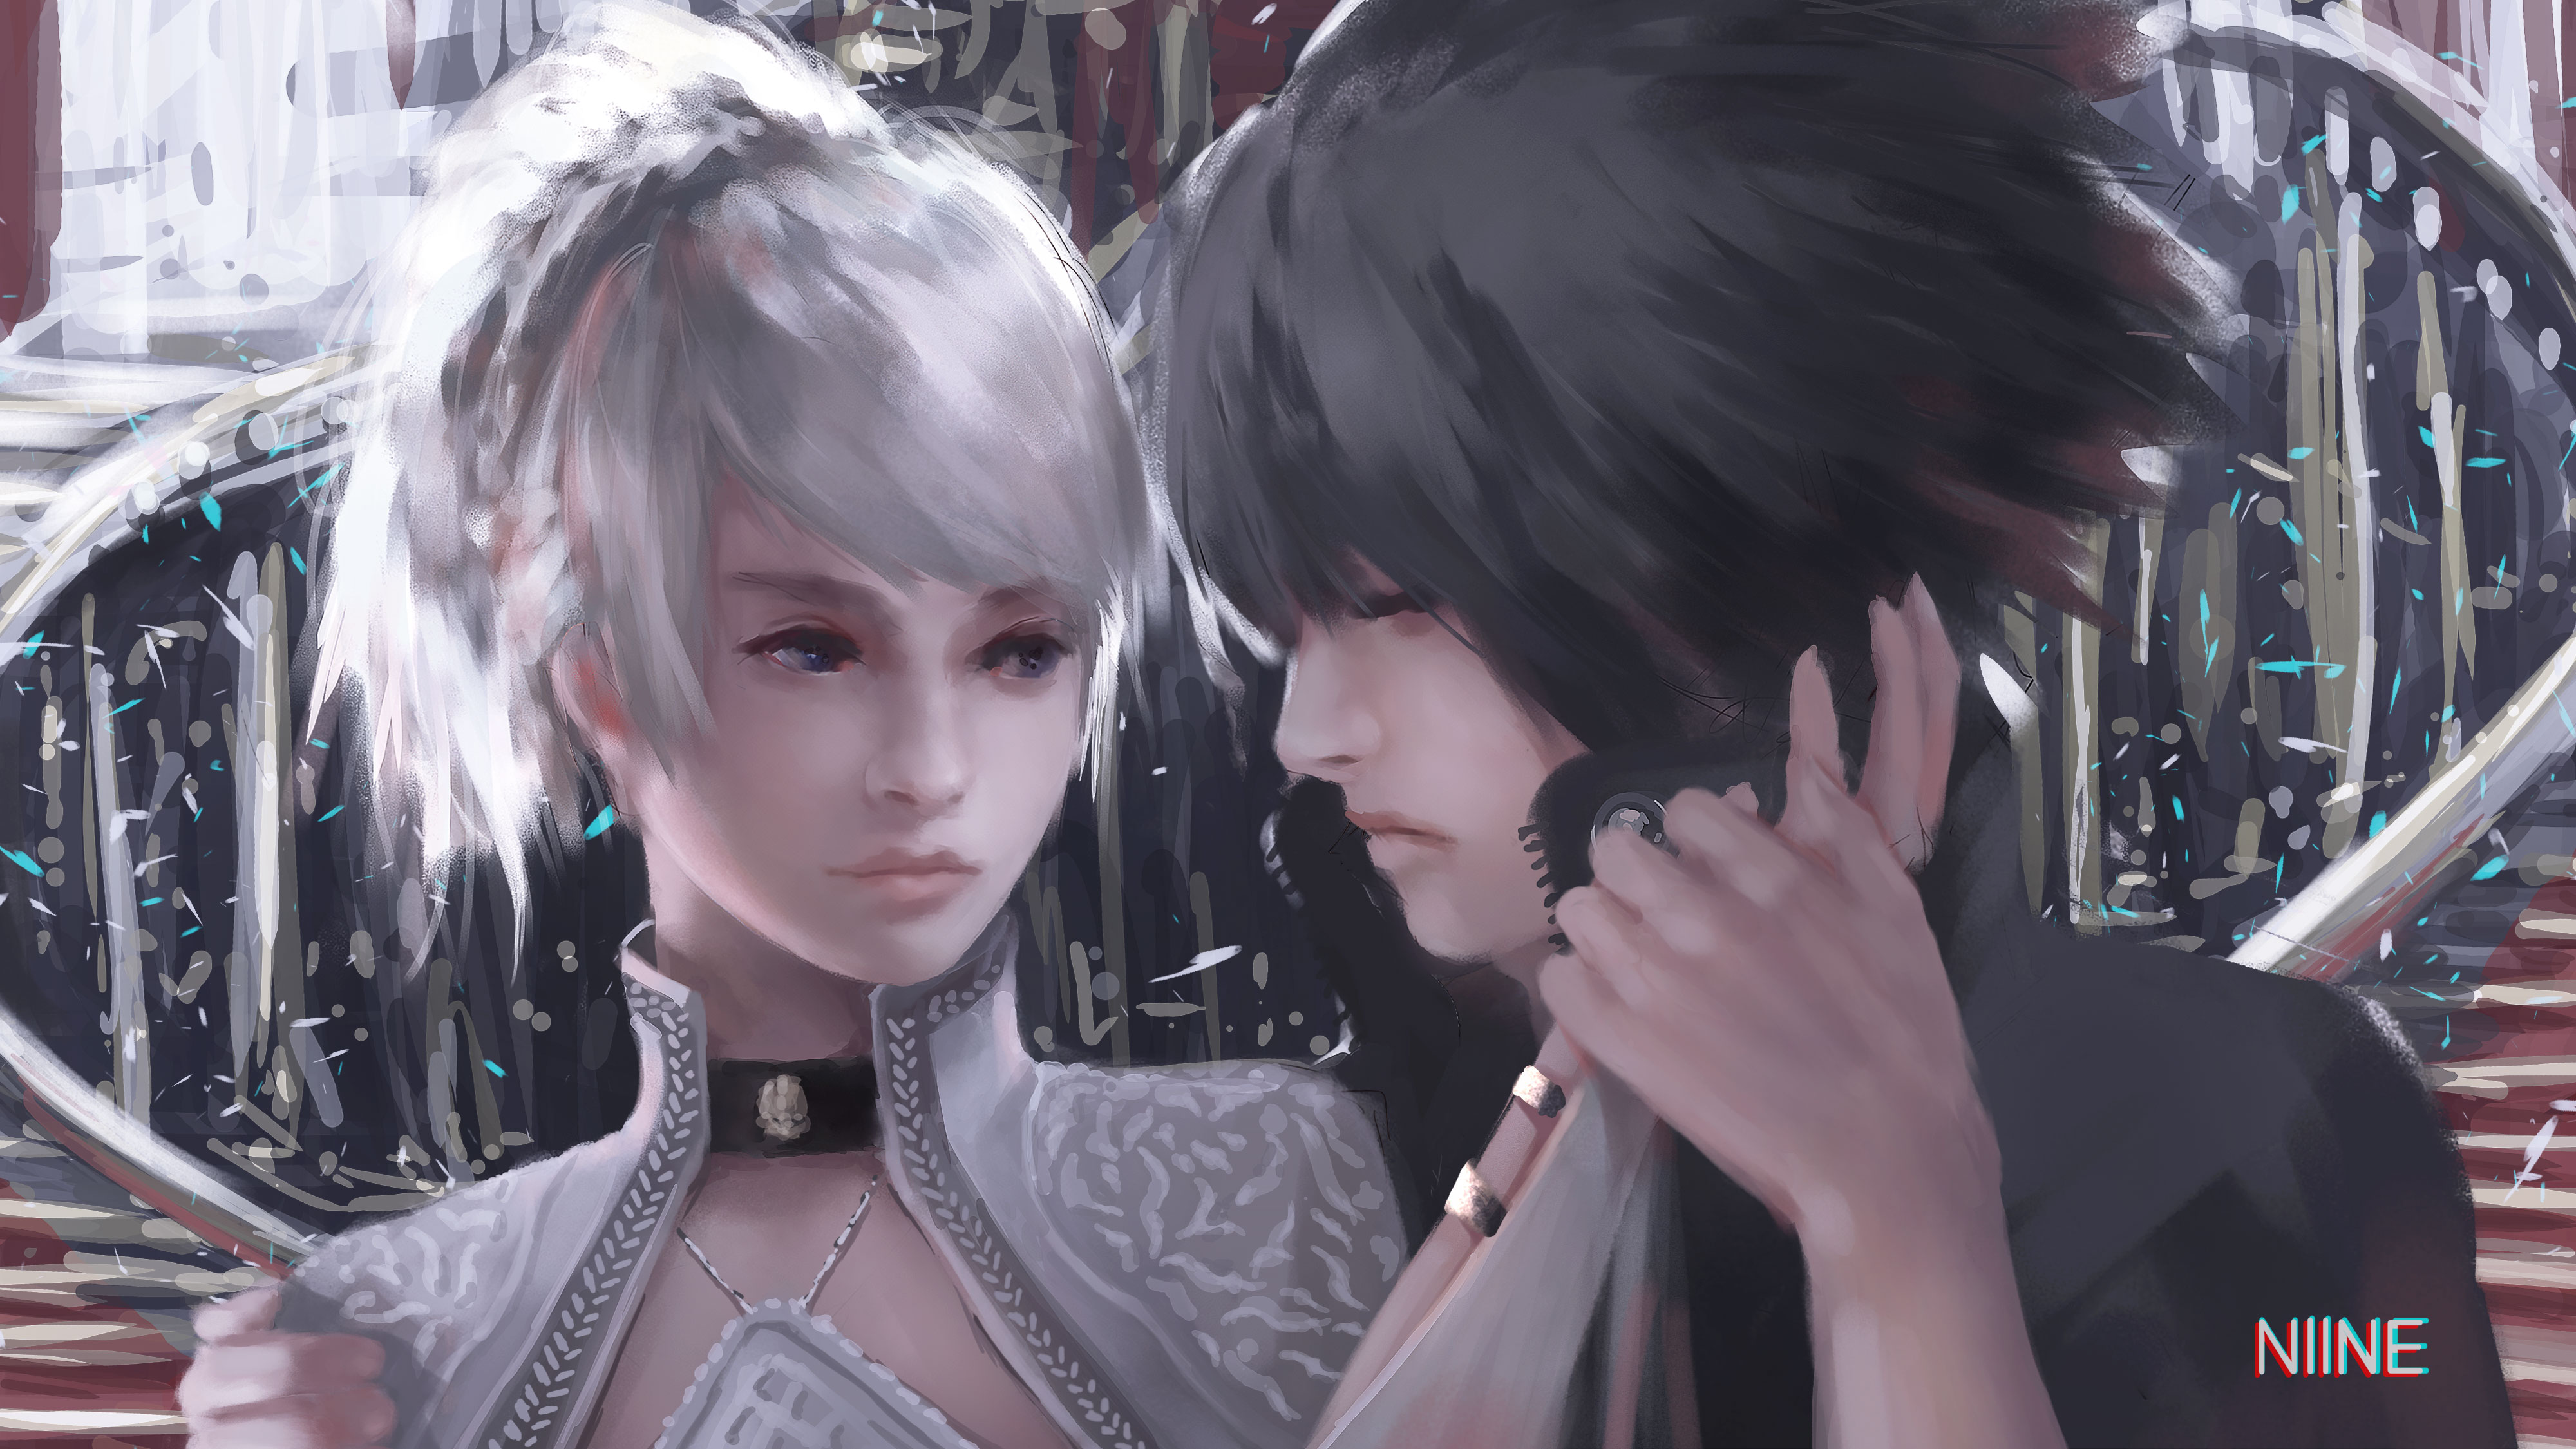 Noctis Lucis Caelum Final Fantasy Xv 4k Hd Games 4k: Luna And Noctis By NiineArt On DeviantArt